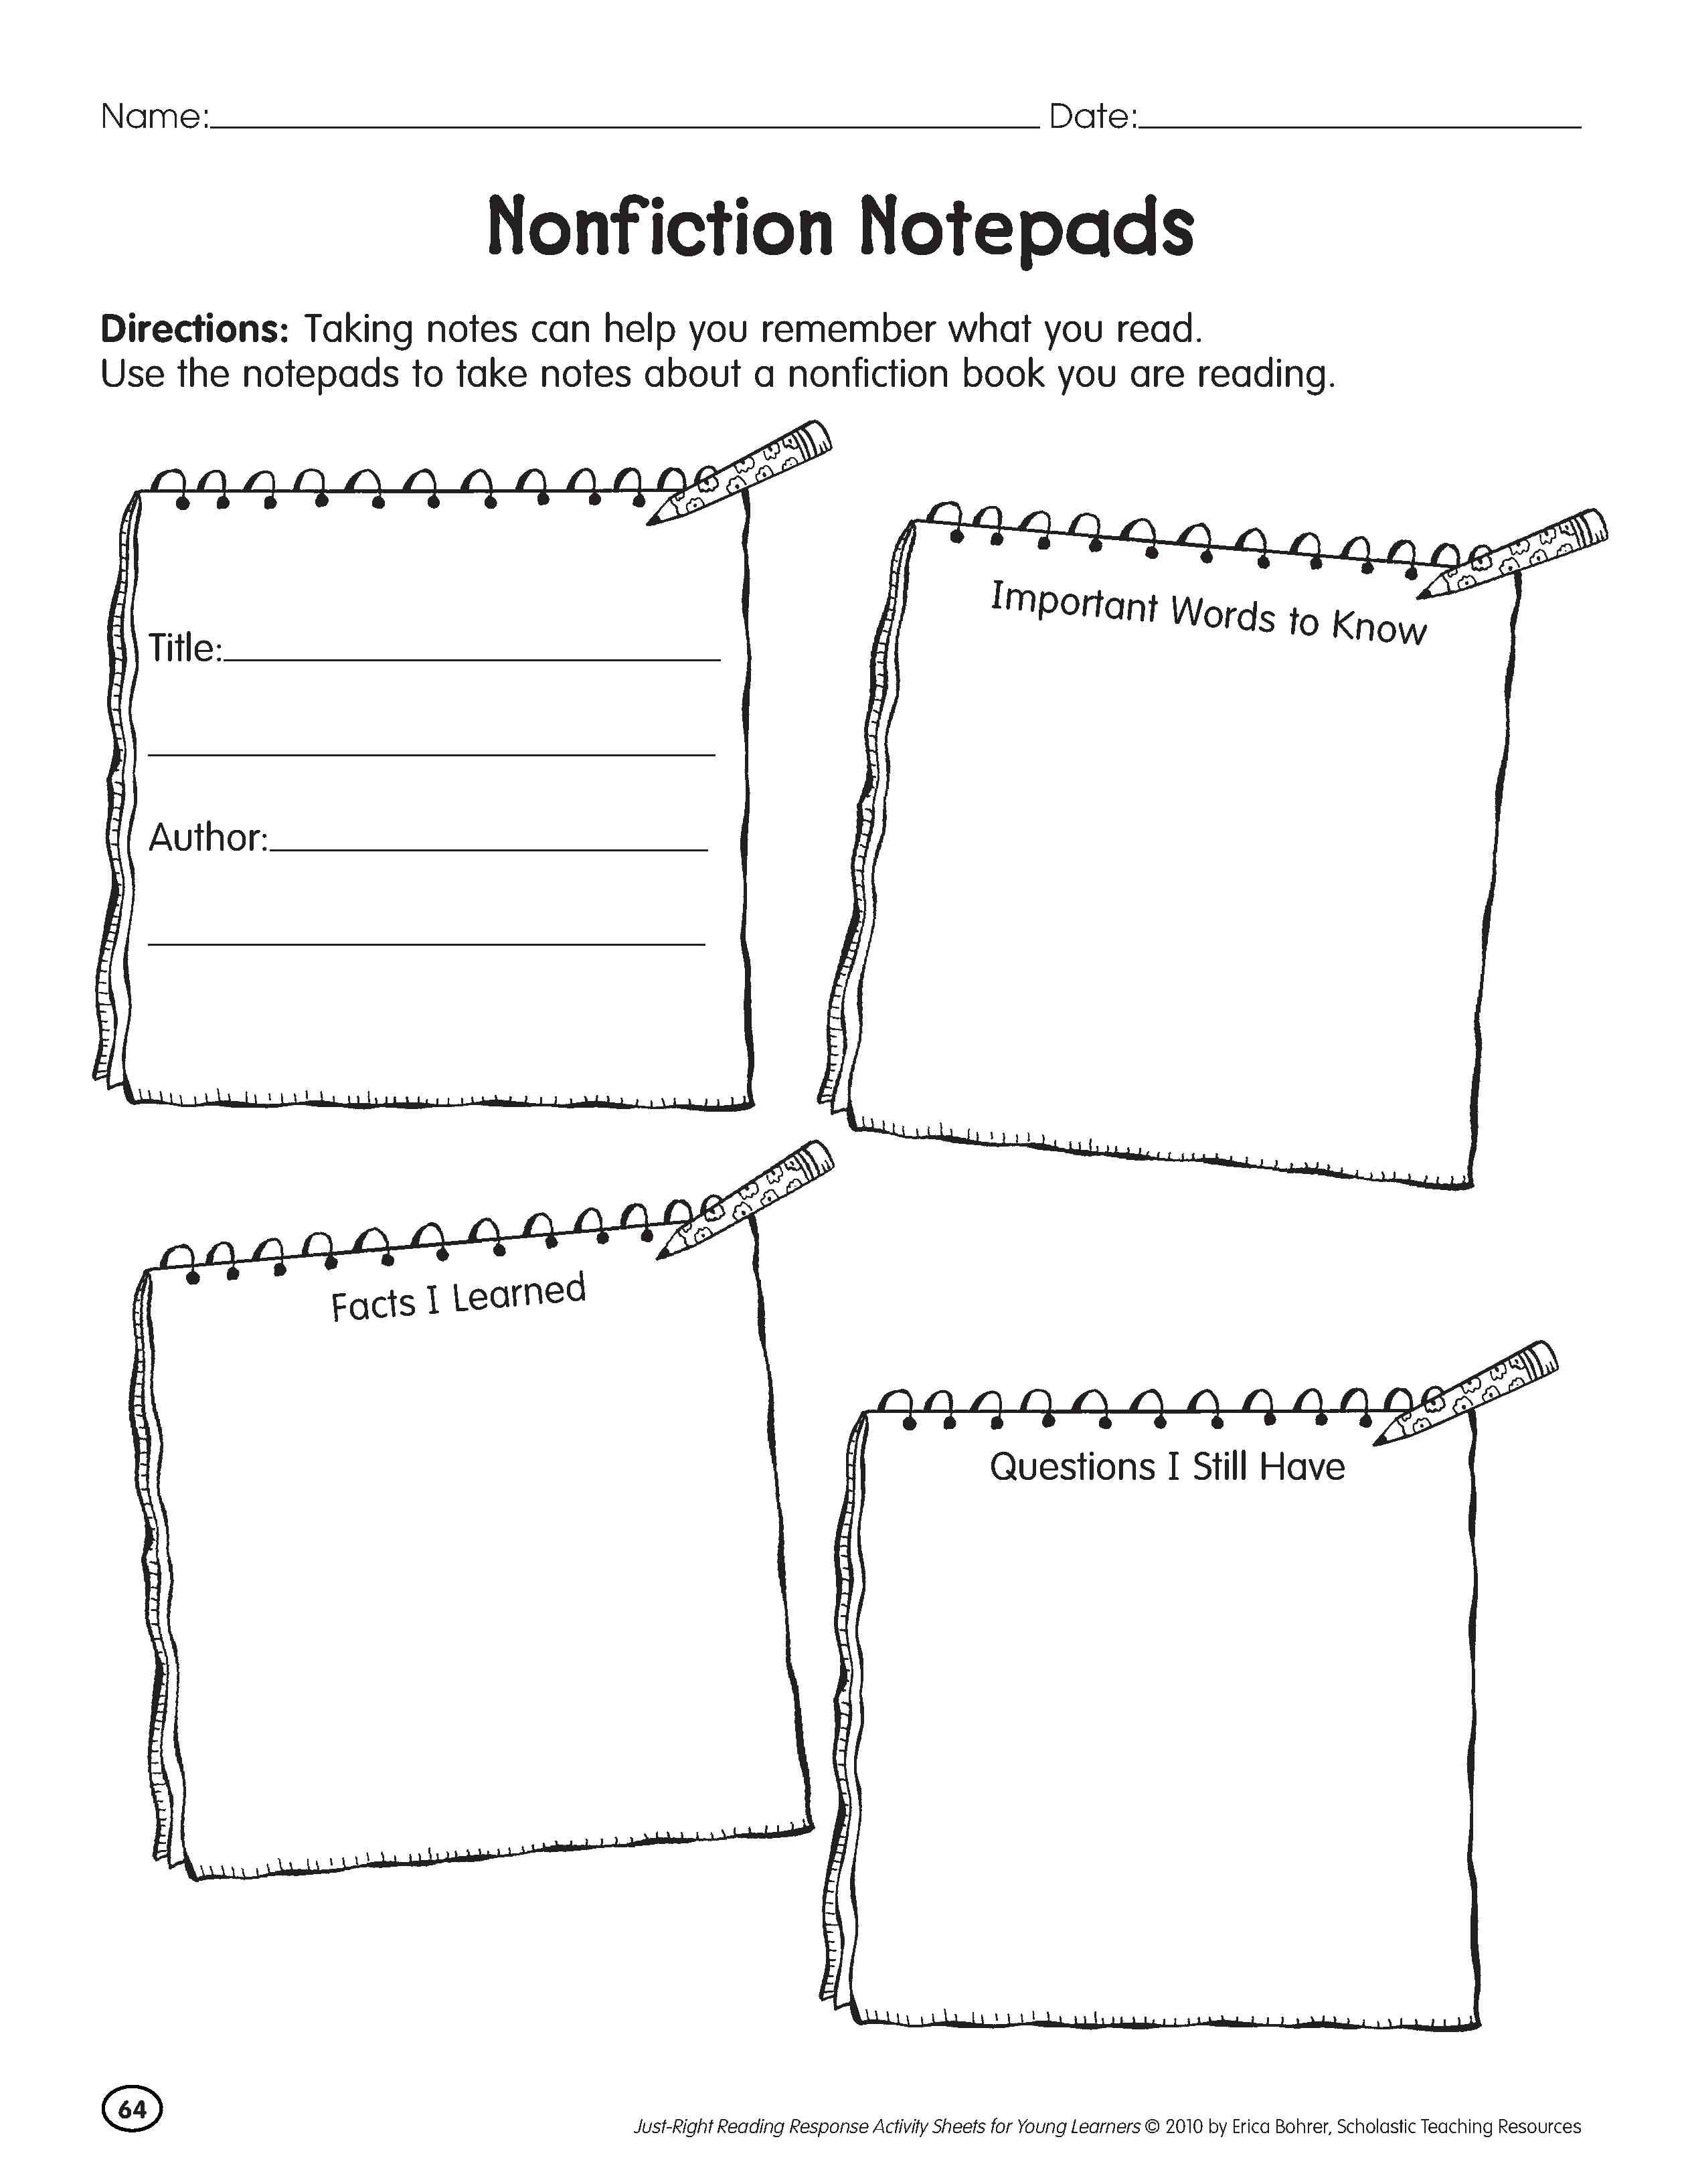 Free Worksheet Fiction Vs Nonfiction Worksheet persuasive writing for officer buckle and gloria the investigating nonfiction notepad